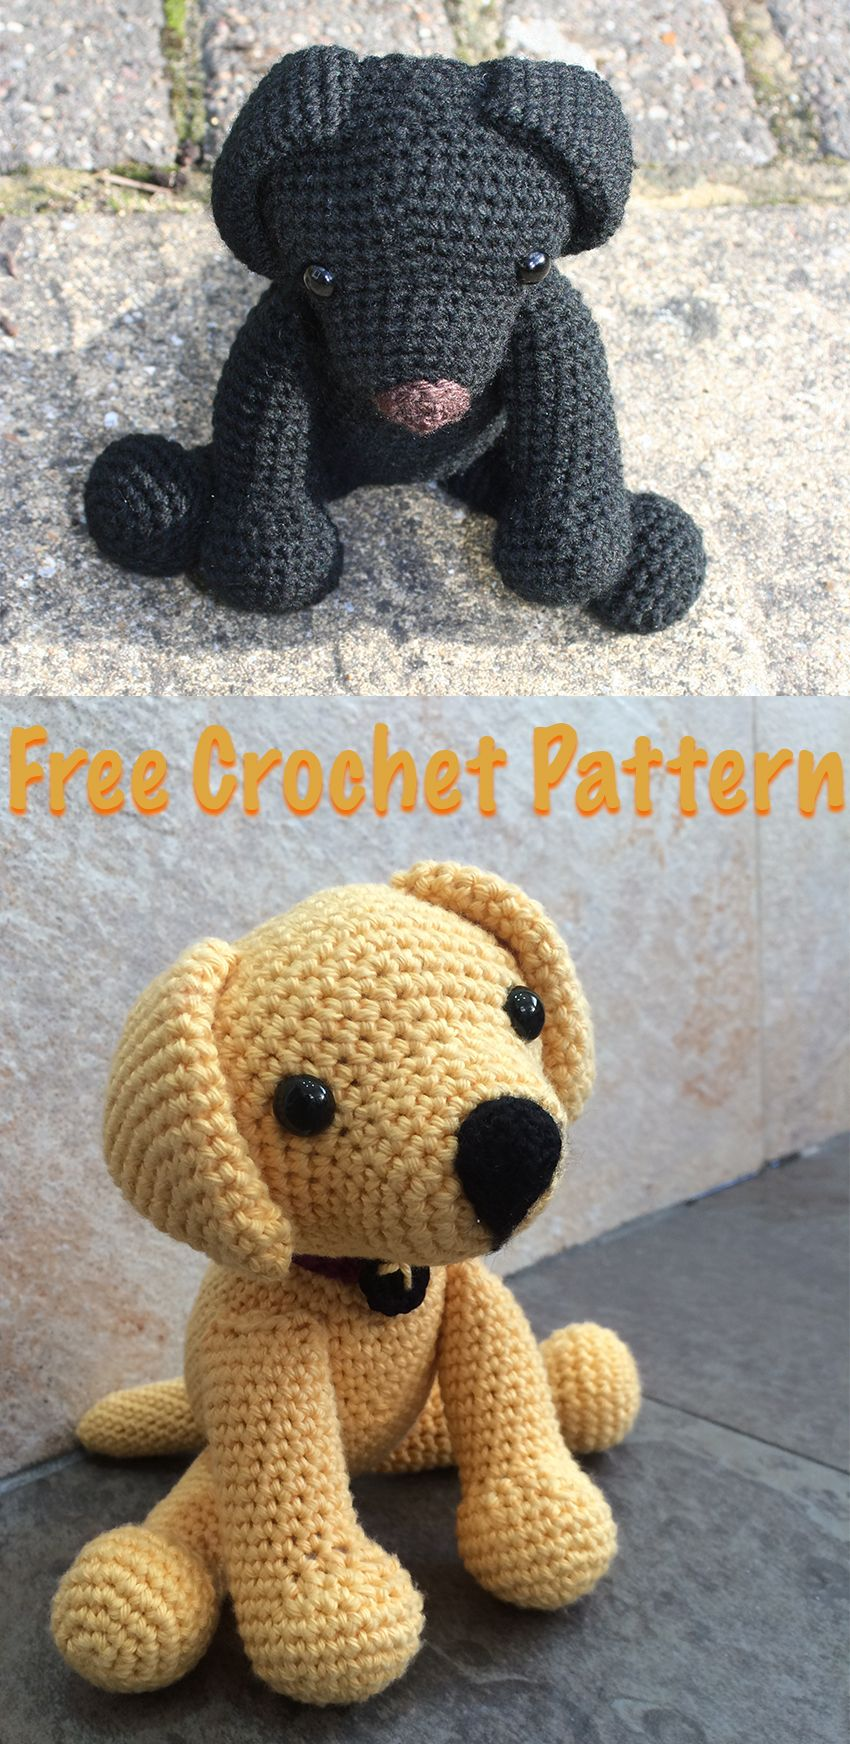 Crochet Labrador: How To Make Your Own Toy Dog | Pinterest ...